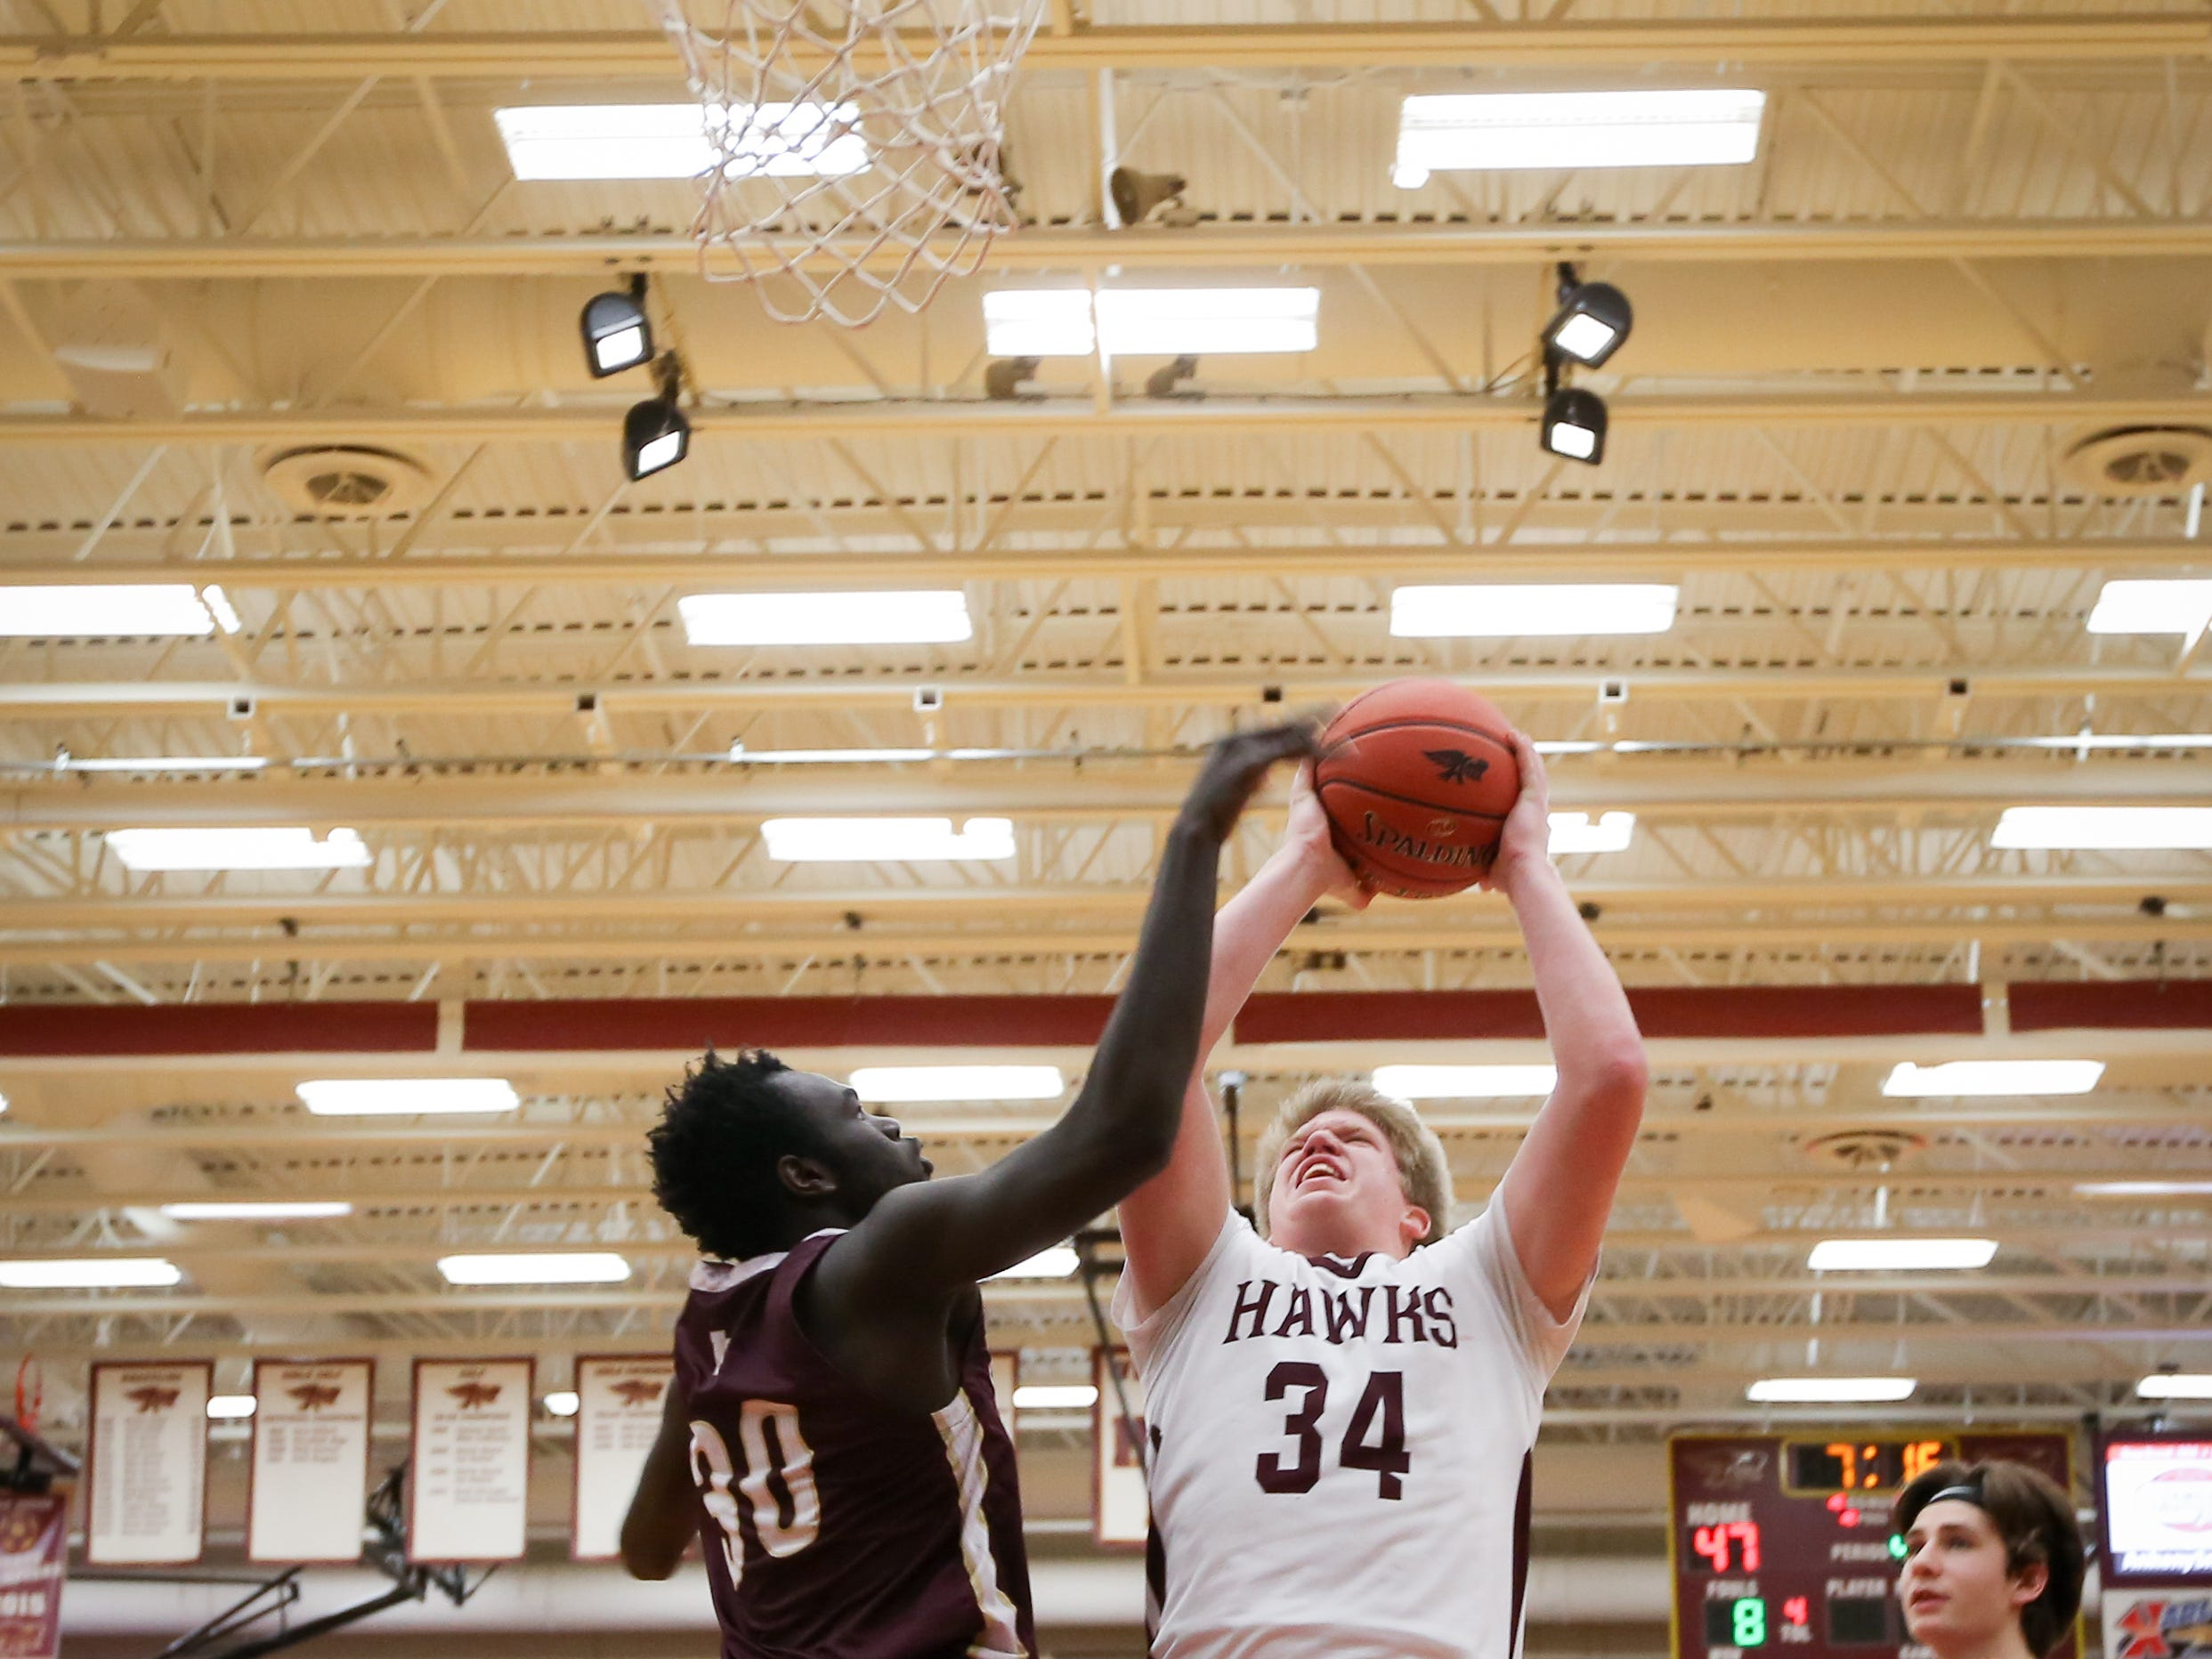 Ankeny junior Nolan Otten goes for a field goal past Lincoln junior Maiwut Jock during a boys high school basketball game between the Lincoln Railsplitters and the Ankeny Hawks at Ankeny High School on Dec. 4, 2018 in Ankeny, Iowa.